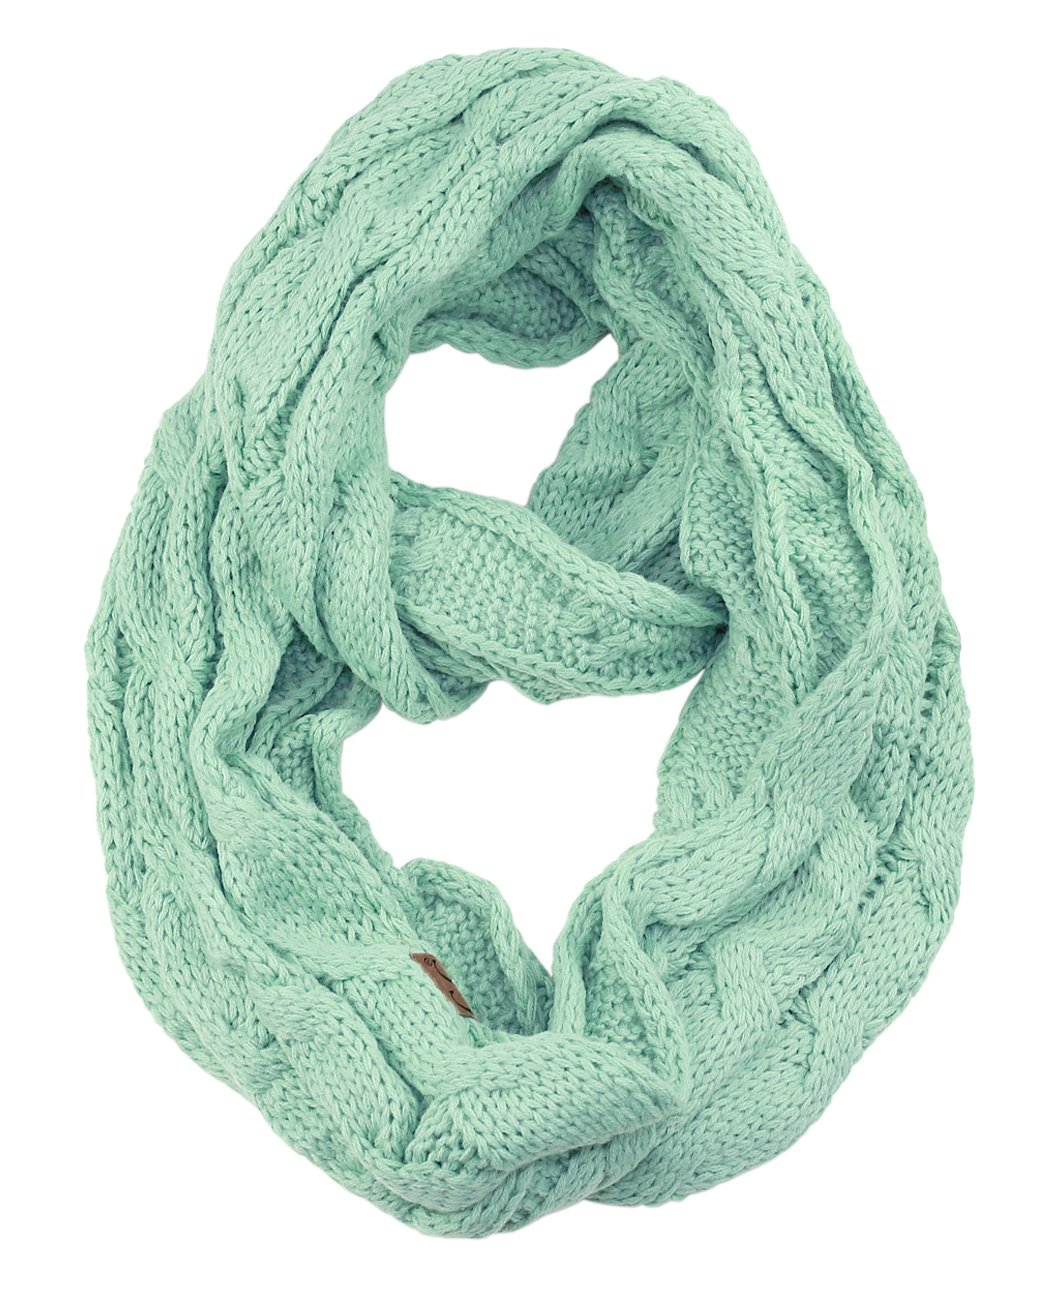 NYFASHION101 Soft Warm Chunky Cable Knit Infinity Loop Scarf Confetti Rust